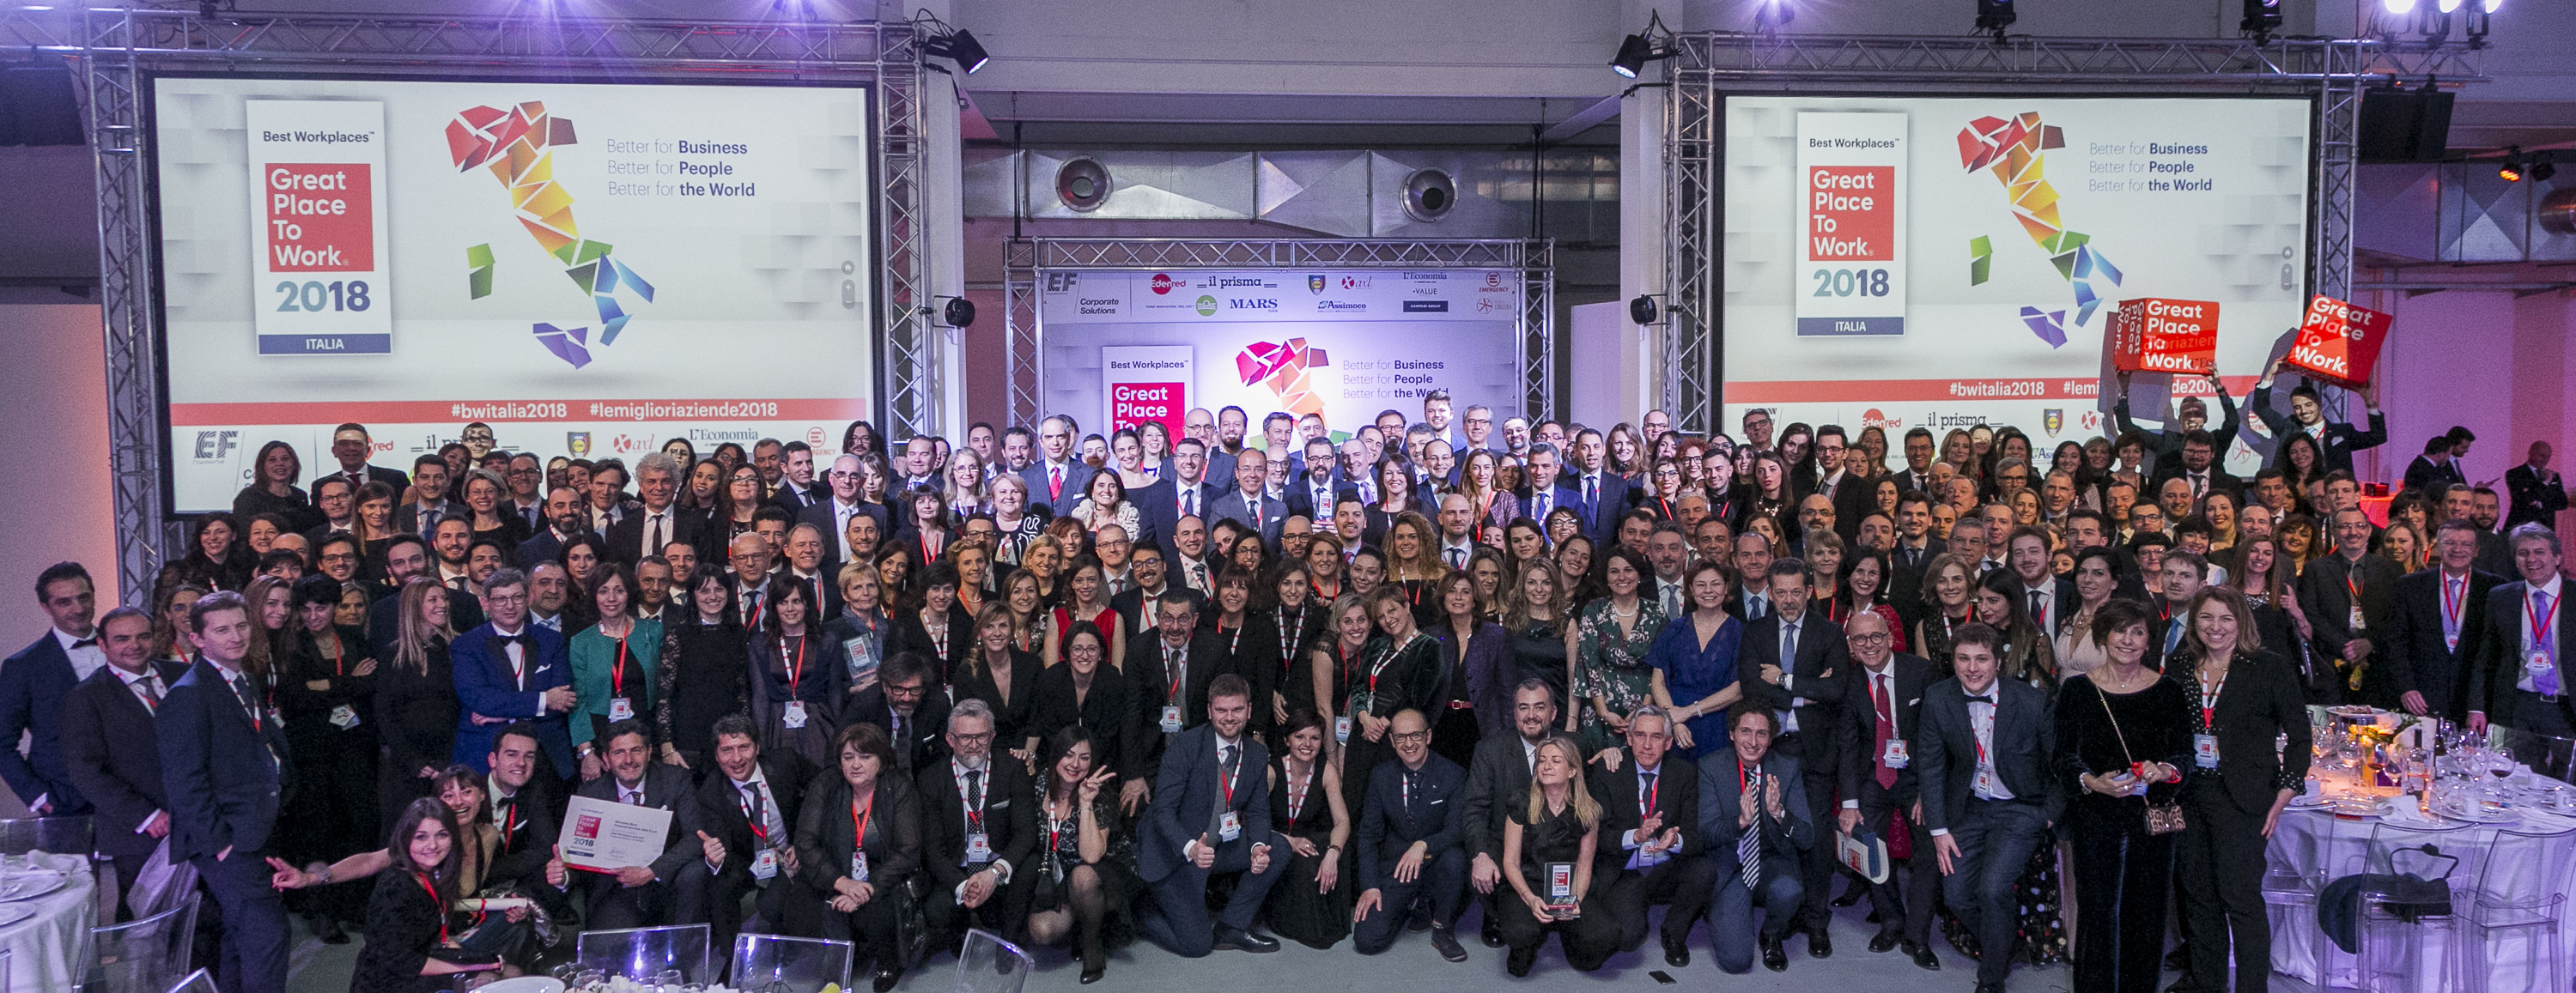 Best Workplaces Italia 2018 | Un approfondimento